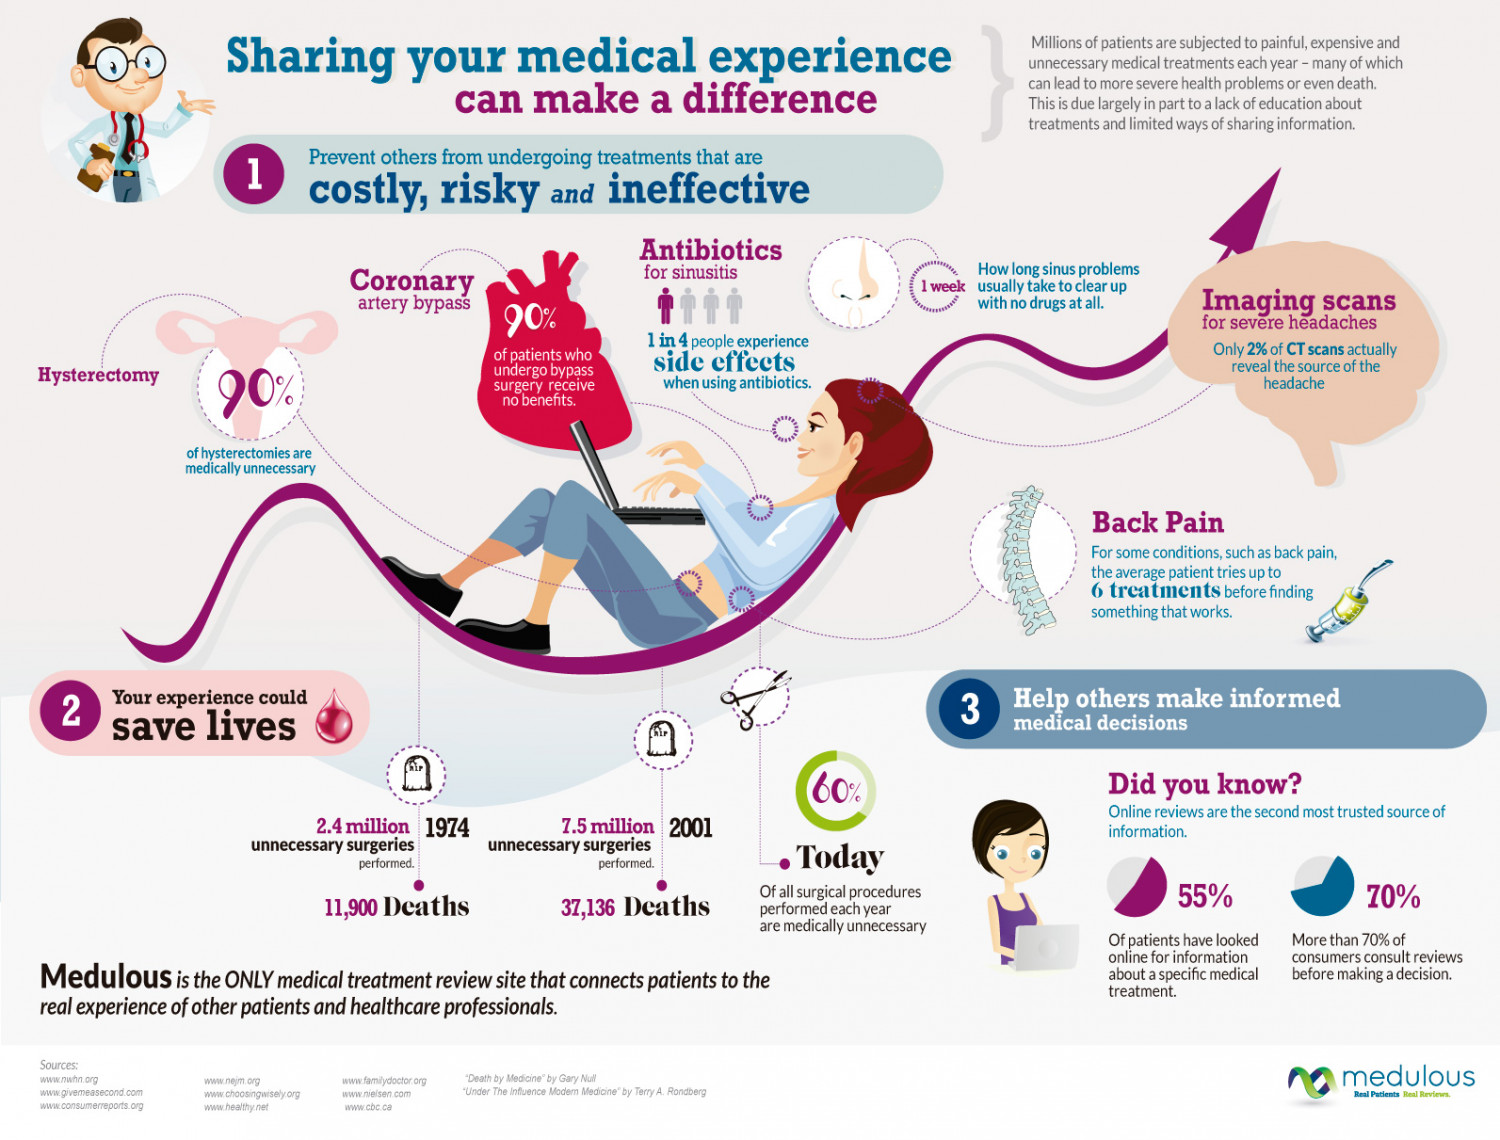 Sharing your medical experience can make a difference Infographic